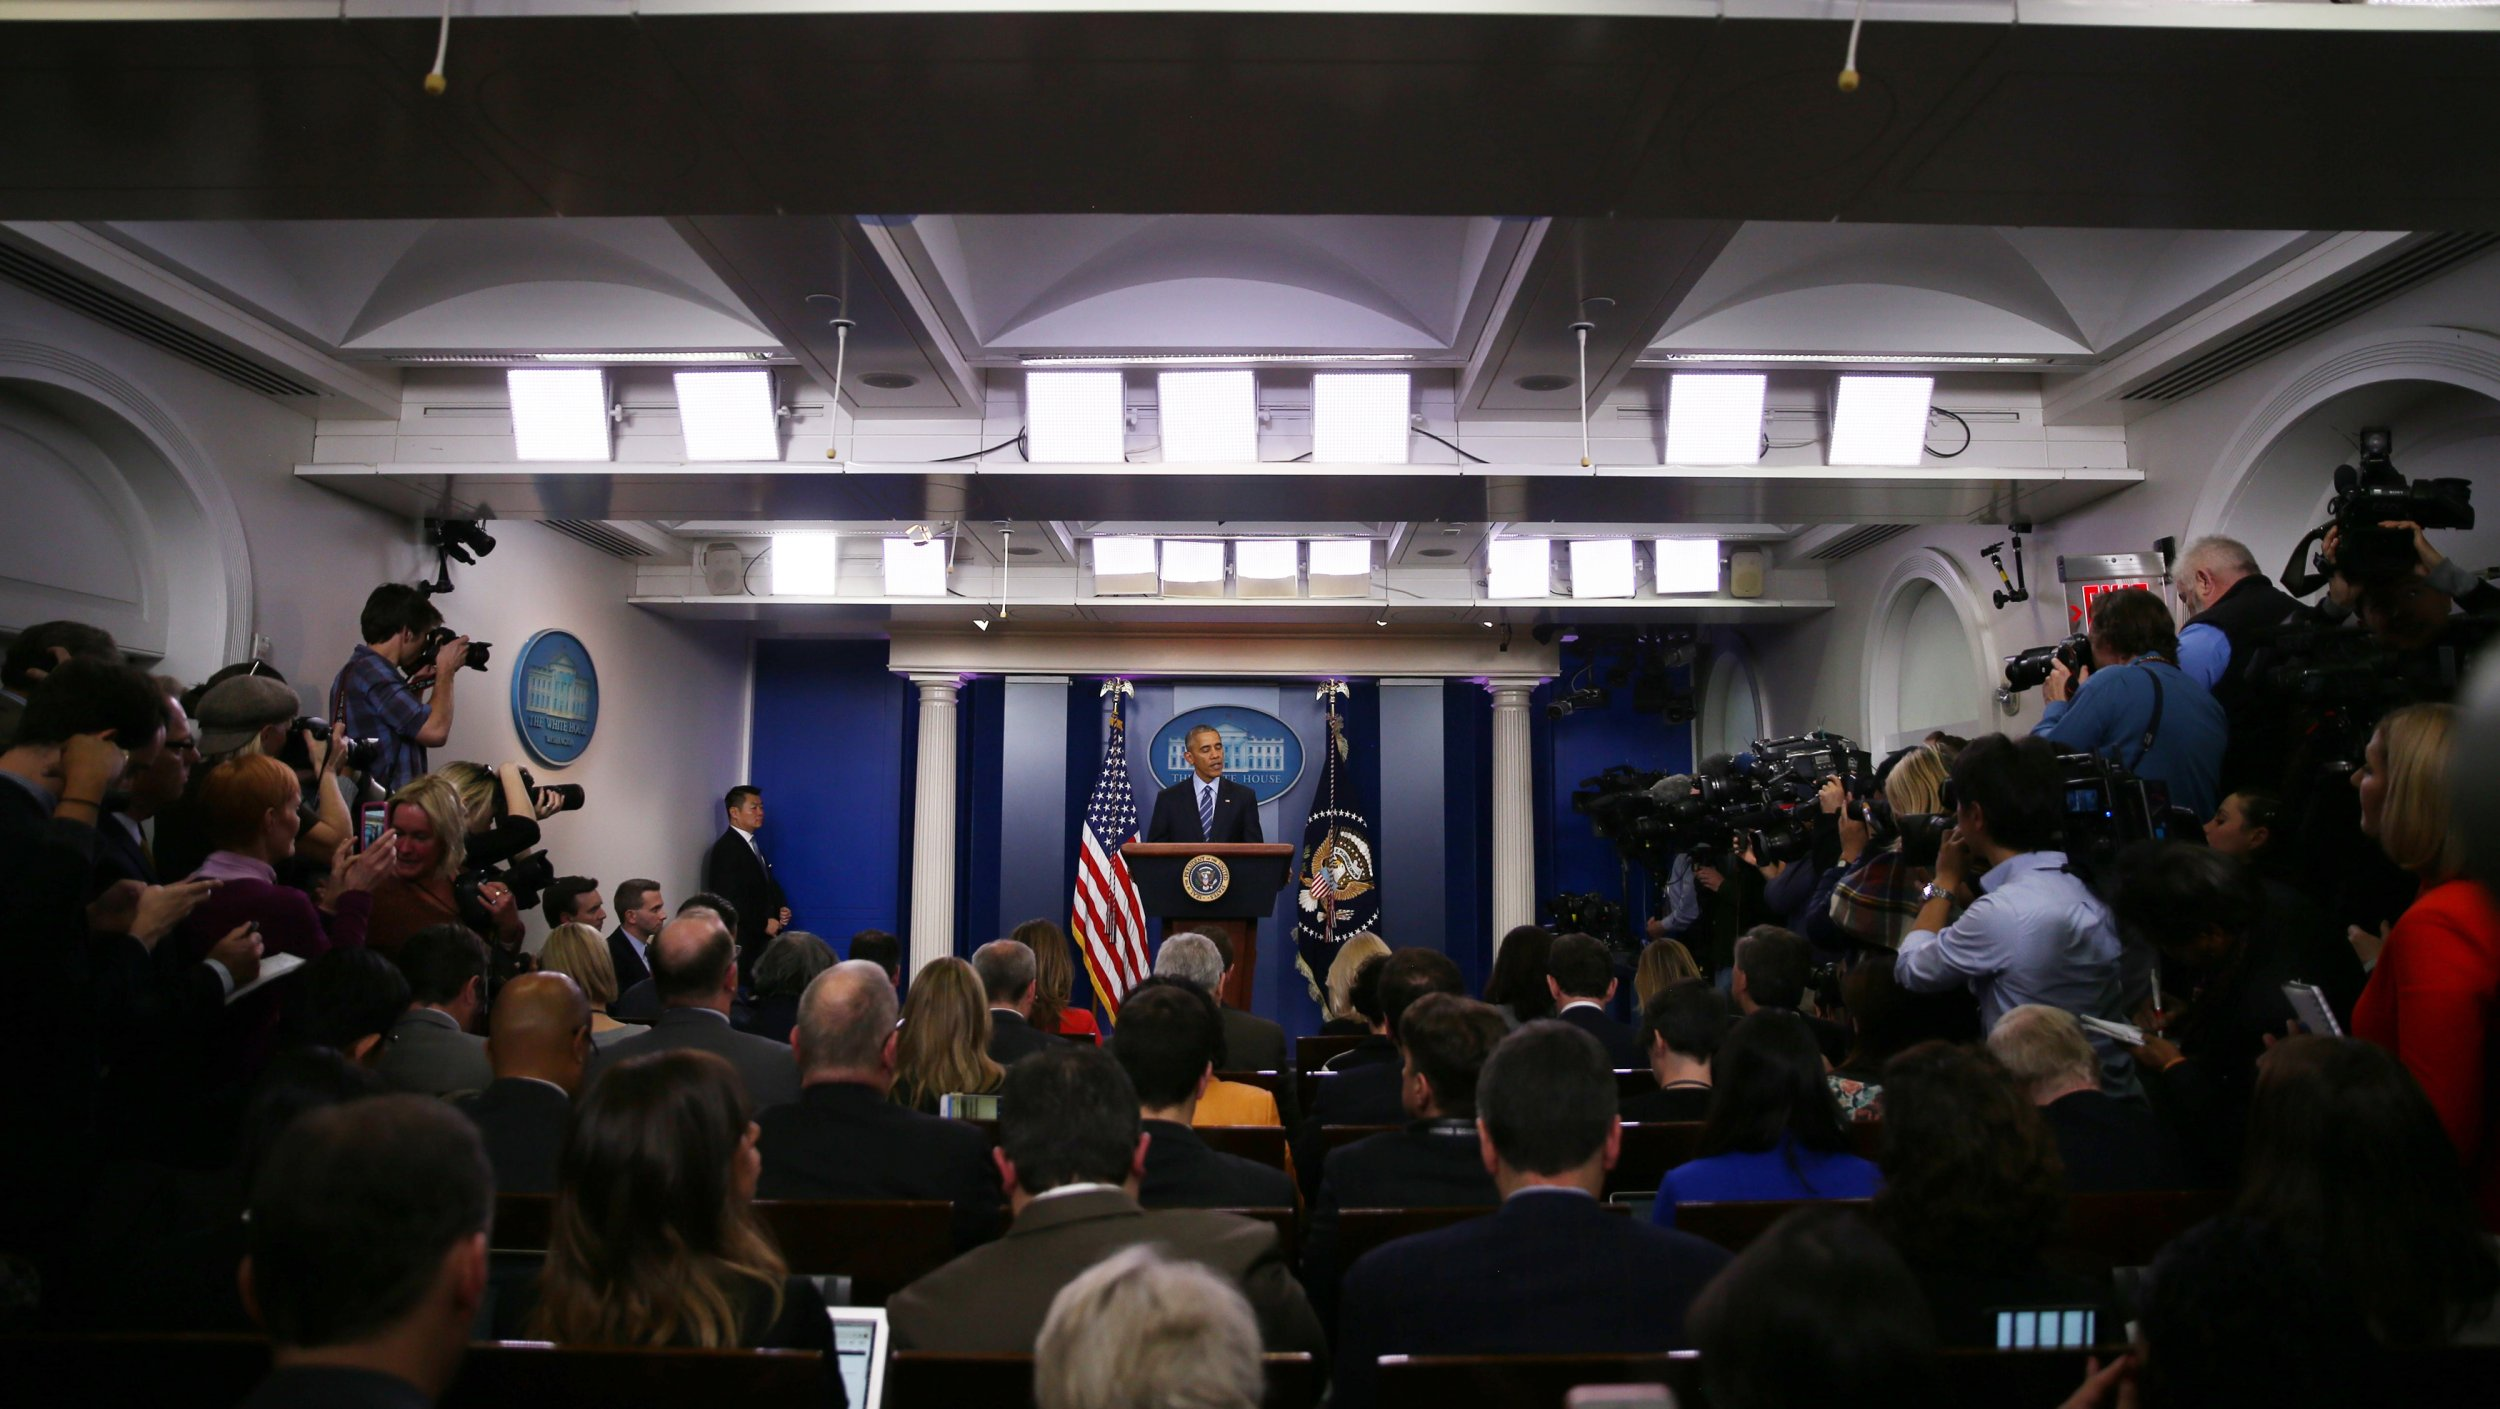 White House To Move Press Briefing Room